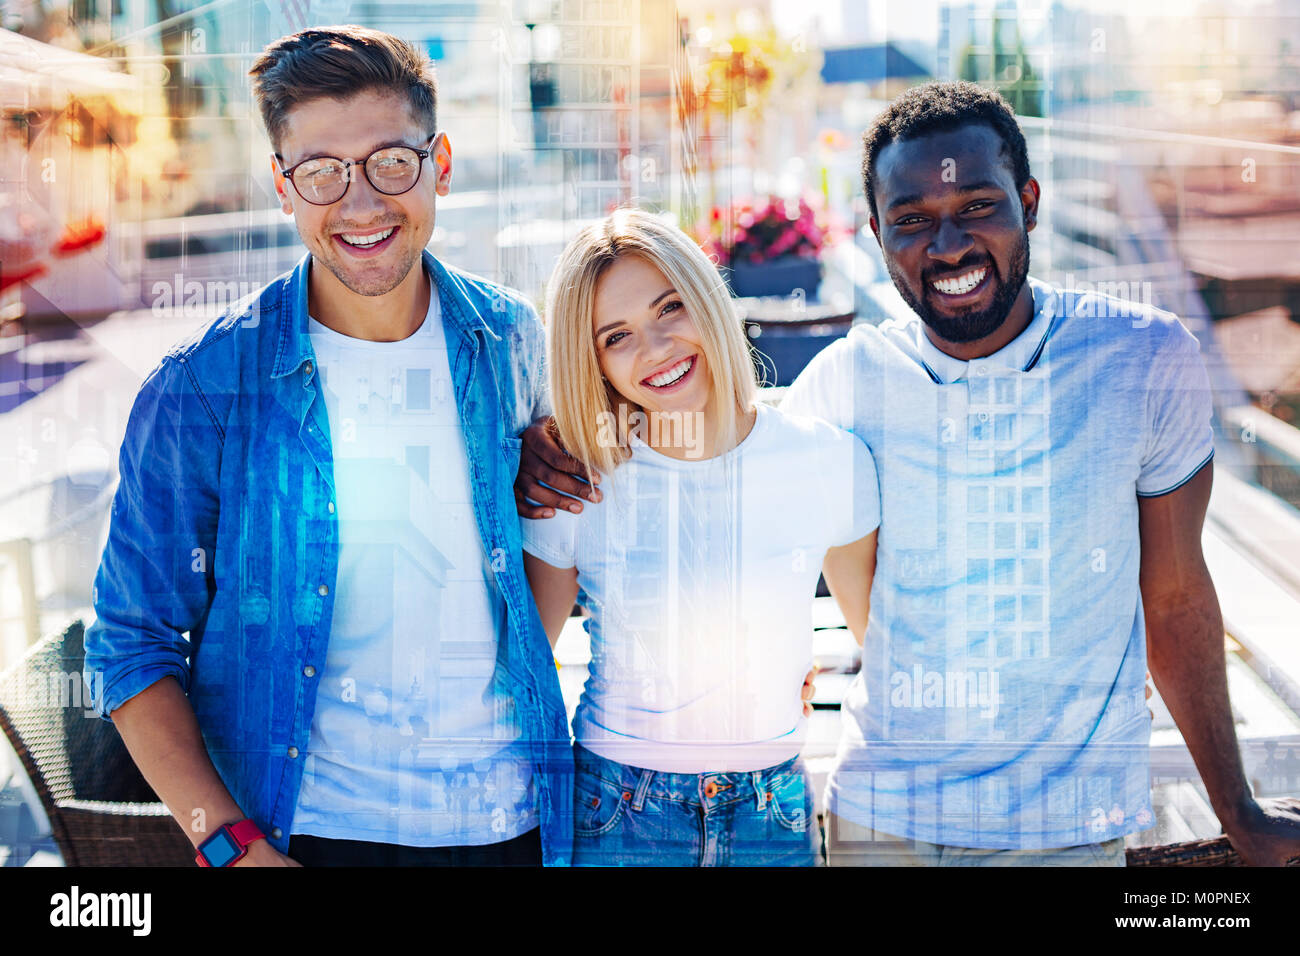 Happy colleagues smiling and standing together - Stock Image